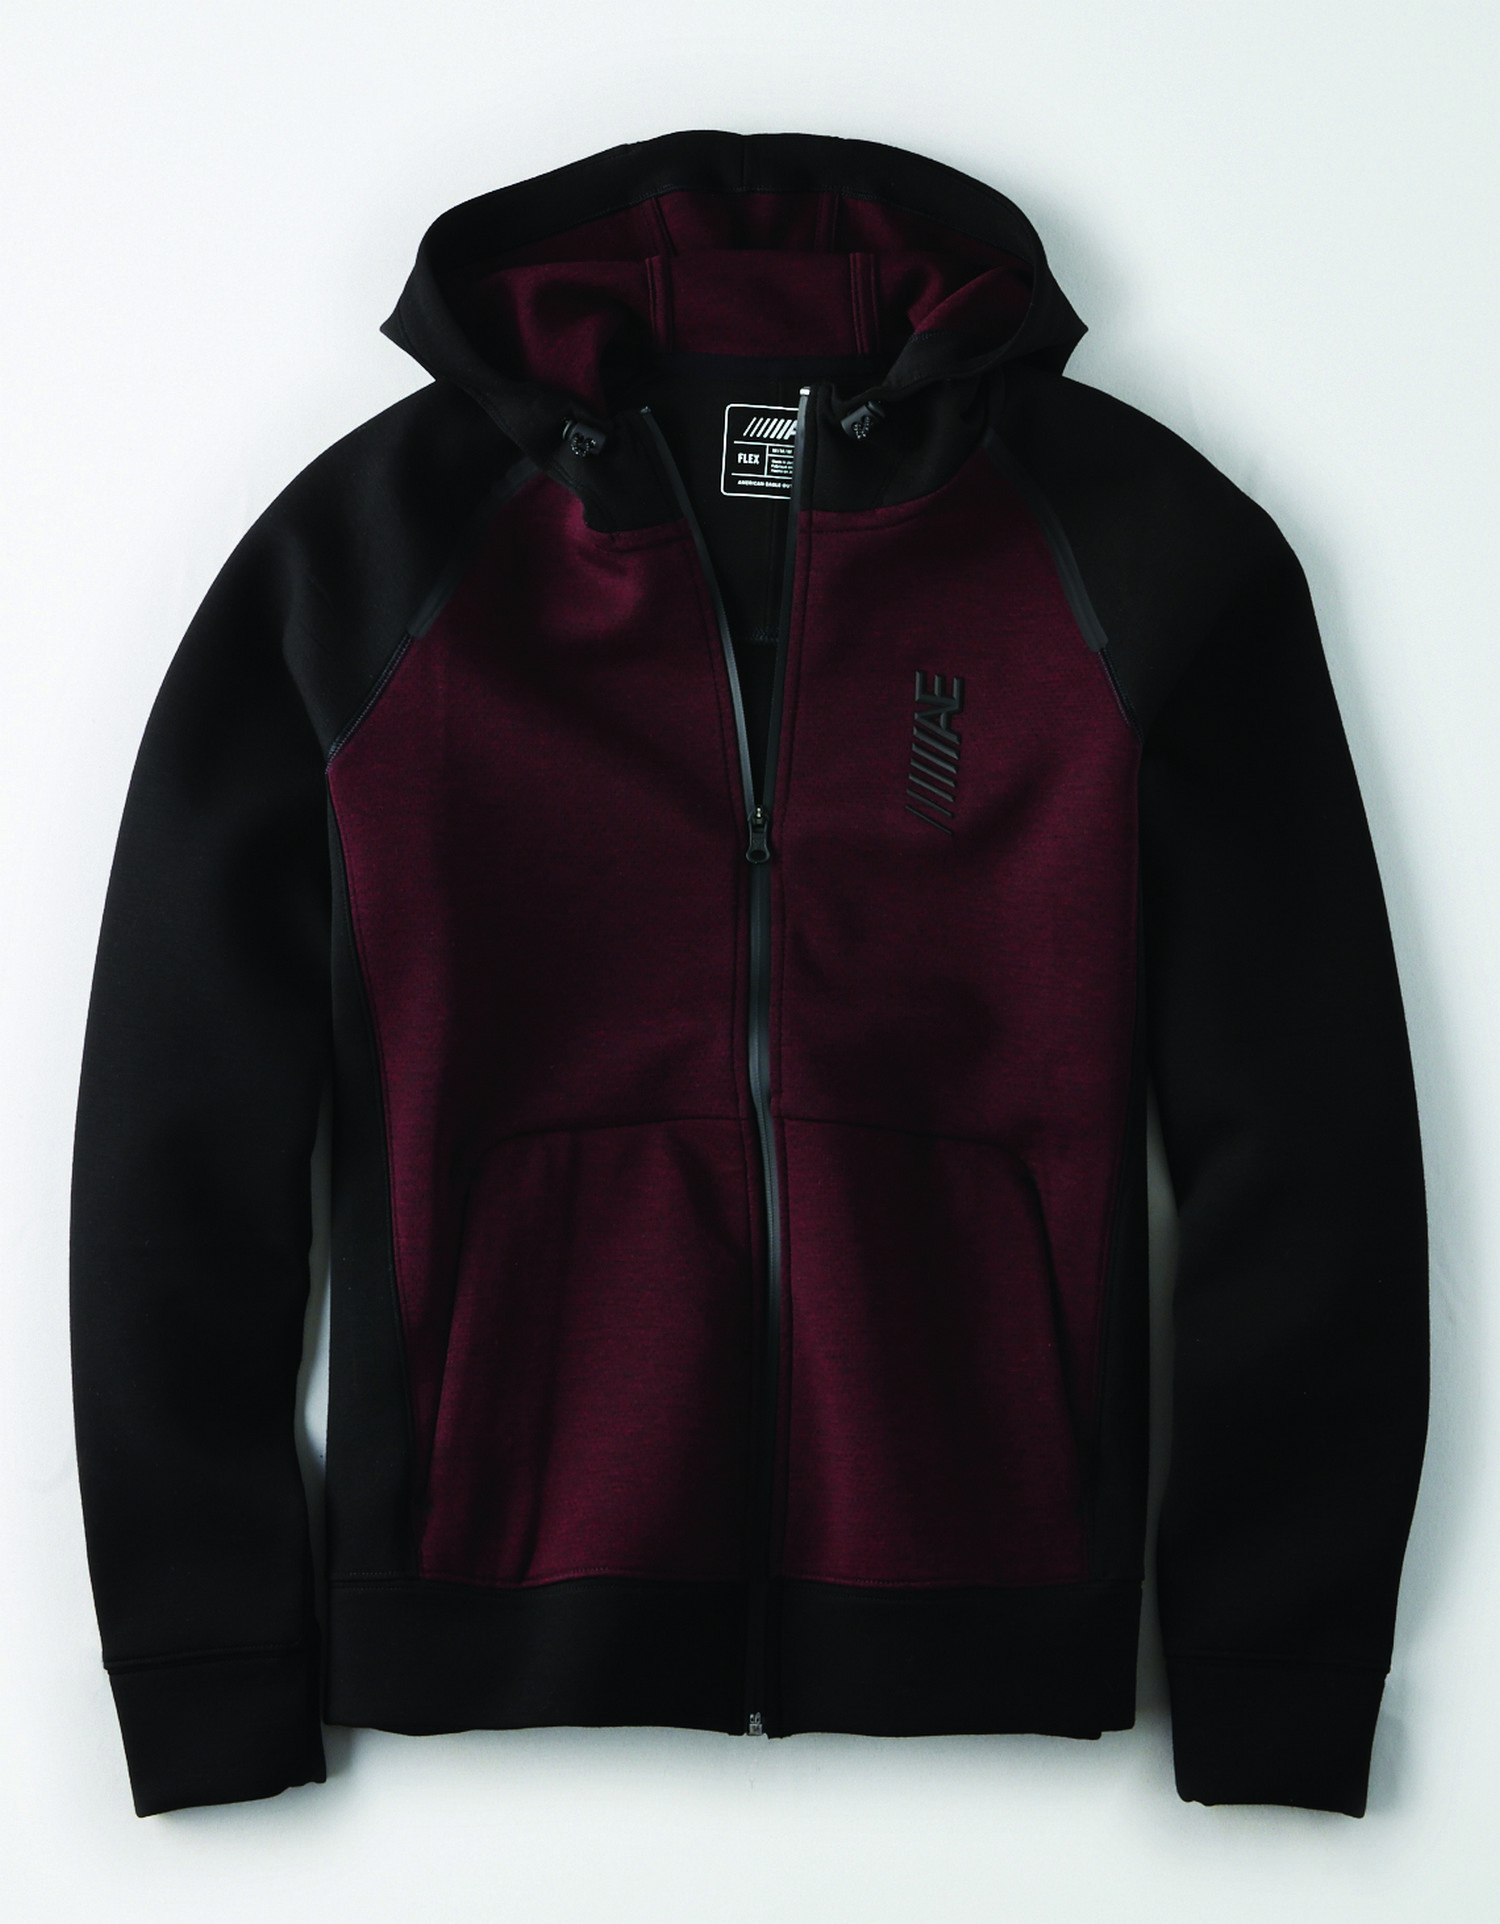 AE - M - Apparel - 9791 FZ W CURVED KANGA PKT - Burgundy body - black sleeves, side panels, and trim - hooded - raised rubber ////AE graphic on left chest - black zipper BG *Tracked